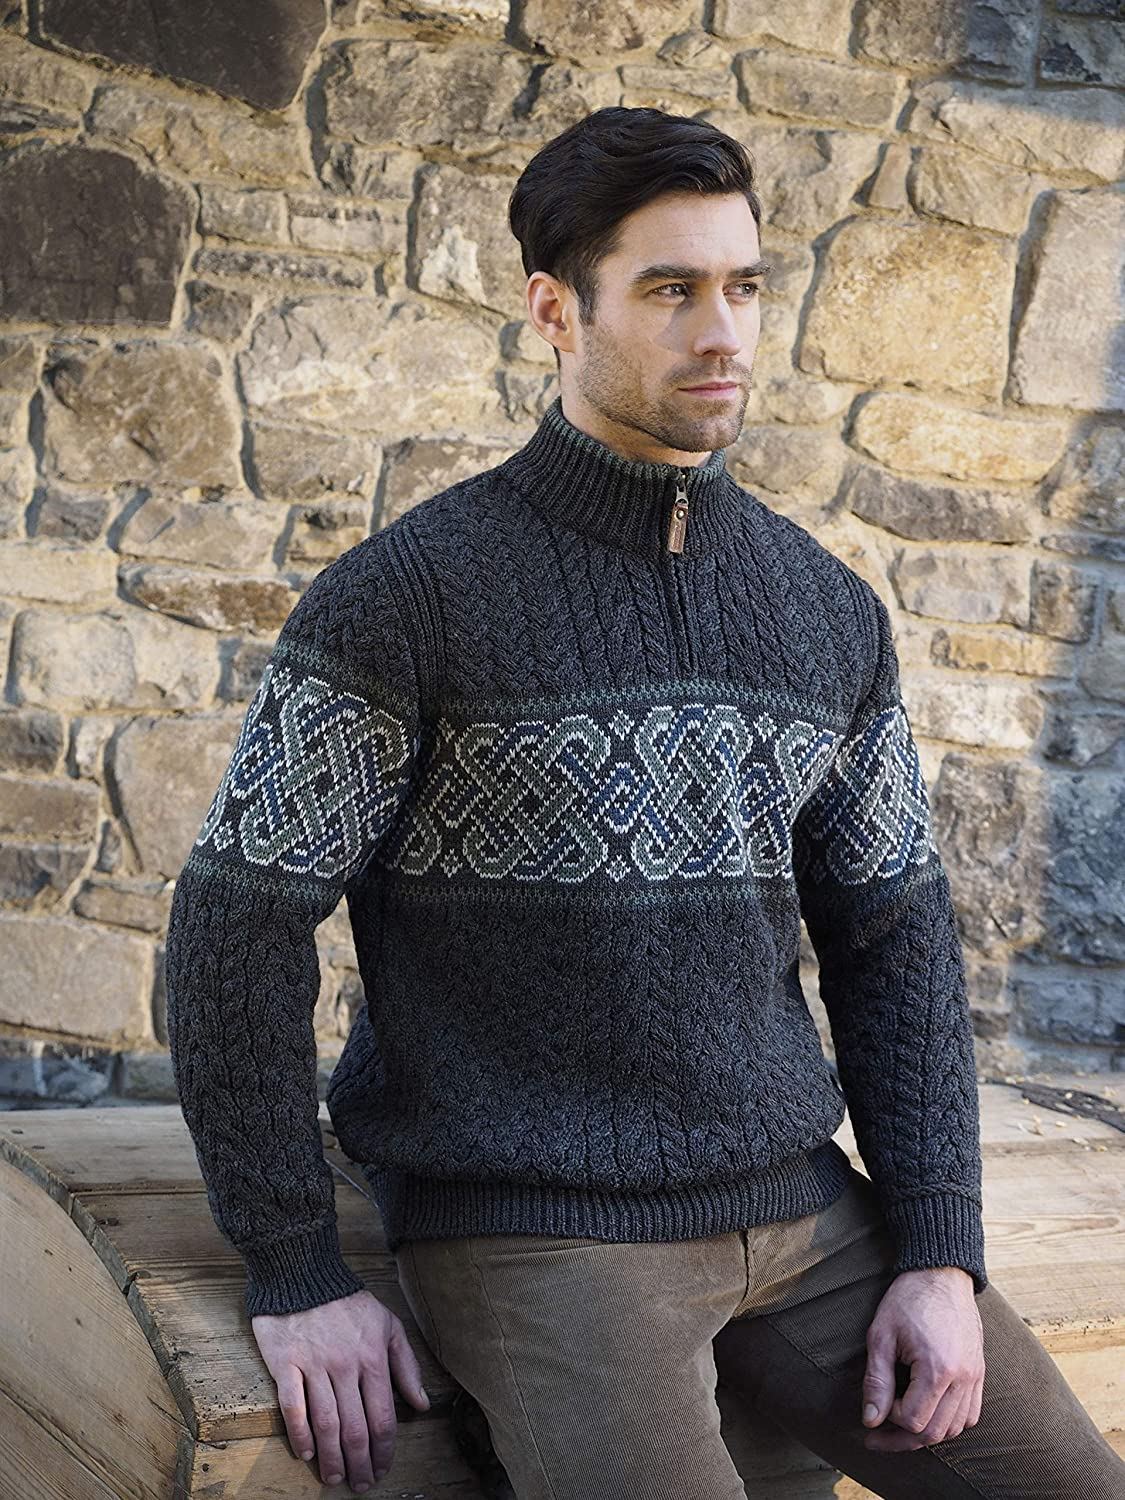 46ad36be021f Amazon.com  Carrolls Irish Gifts Men s Half-Zipped Jacquard Sweater with Celtic  Knitted Design